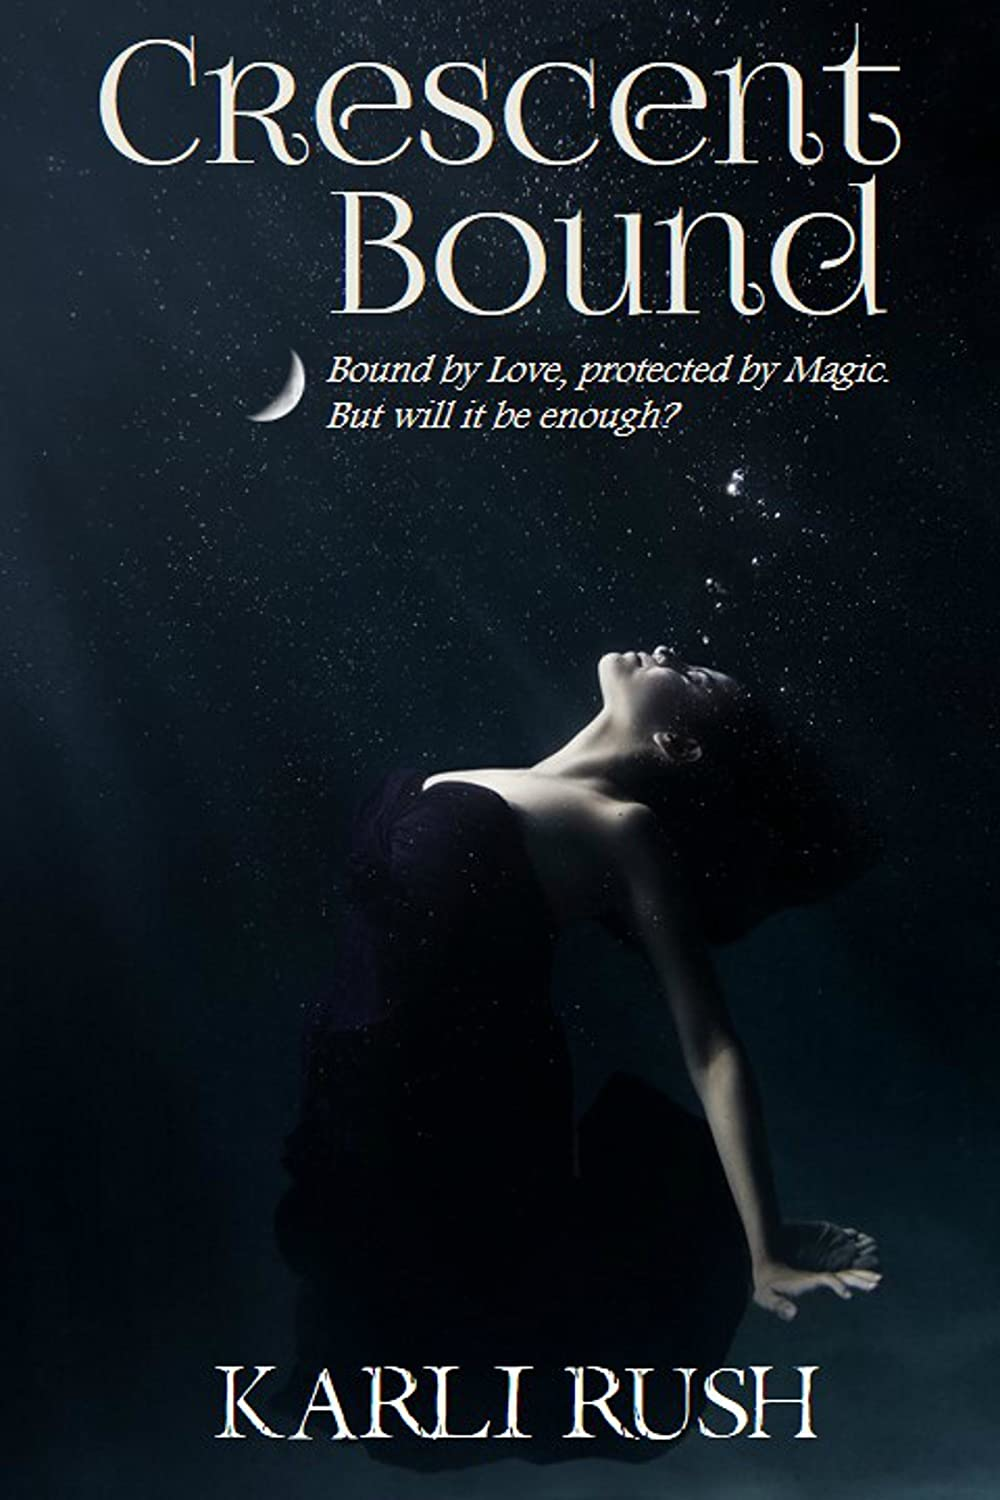 Beautiful Book Covers Goodreads : Goodreads librarians group book cover help